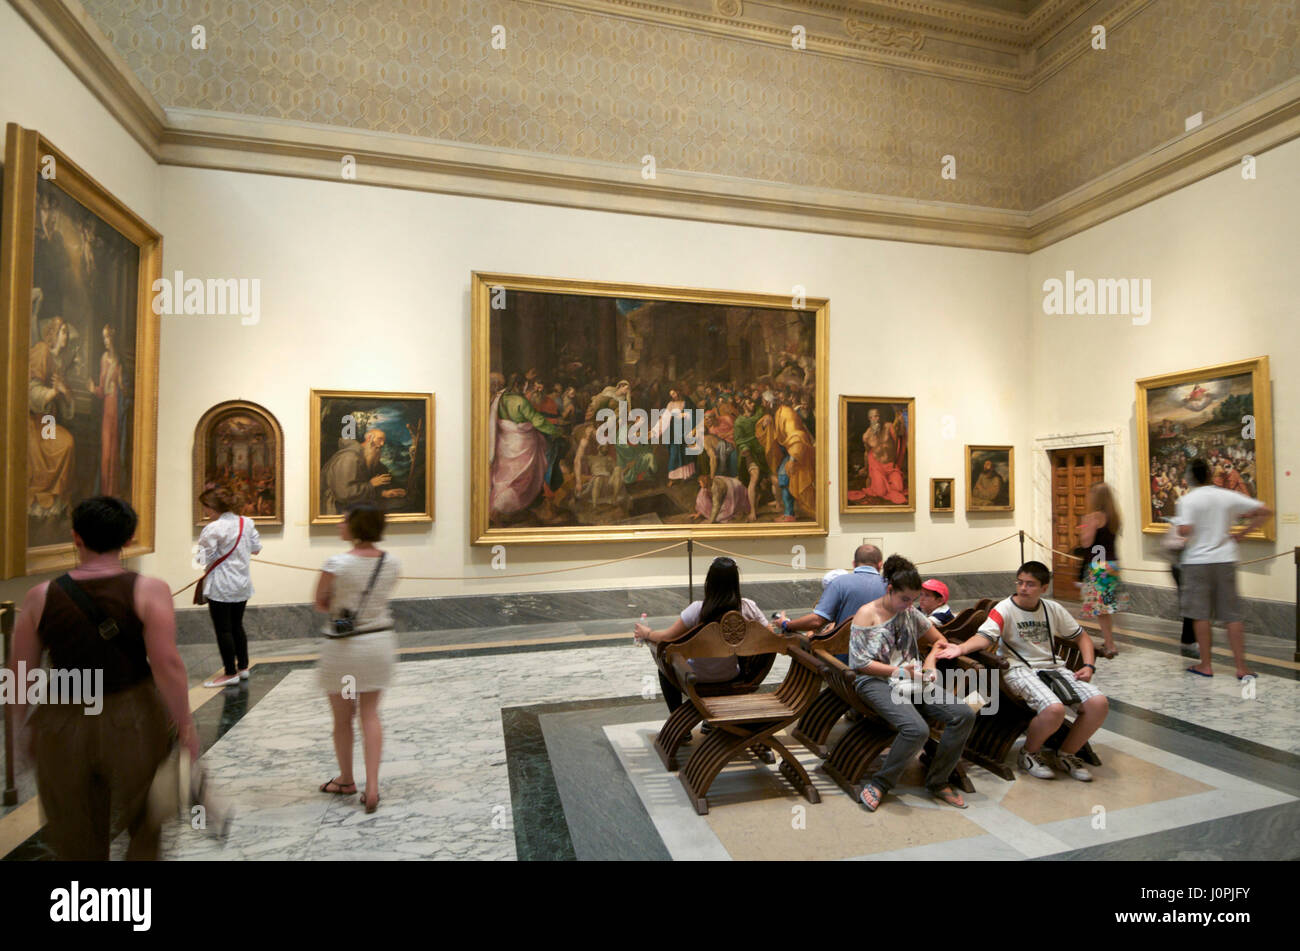 Tourists, Vatican Museum, Rome, Italy, Europe - Stock Image